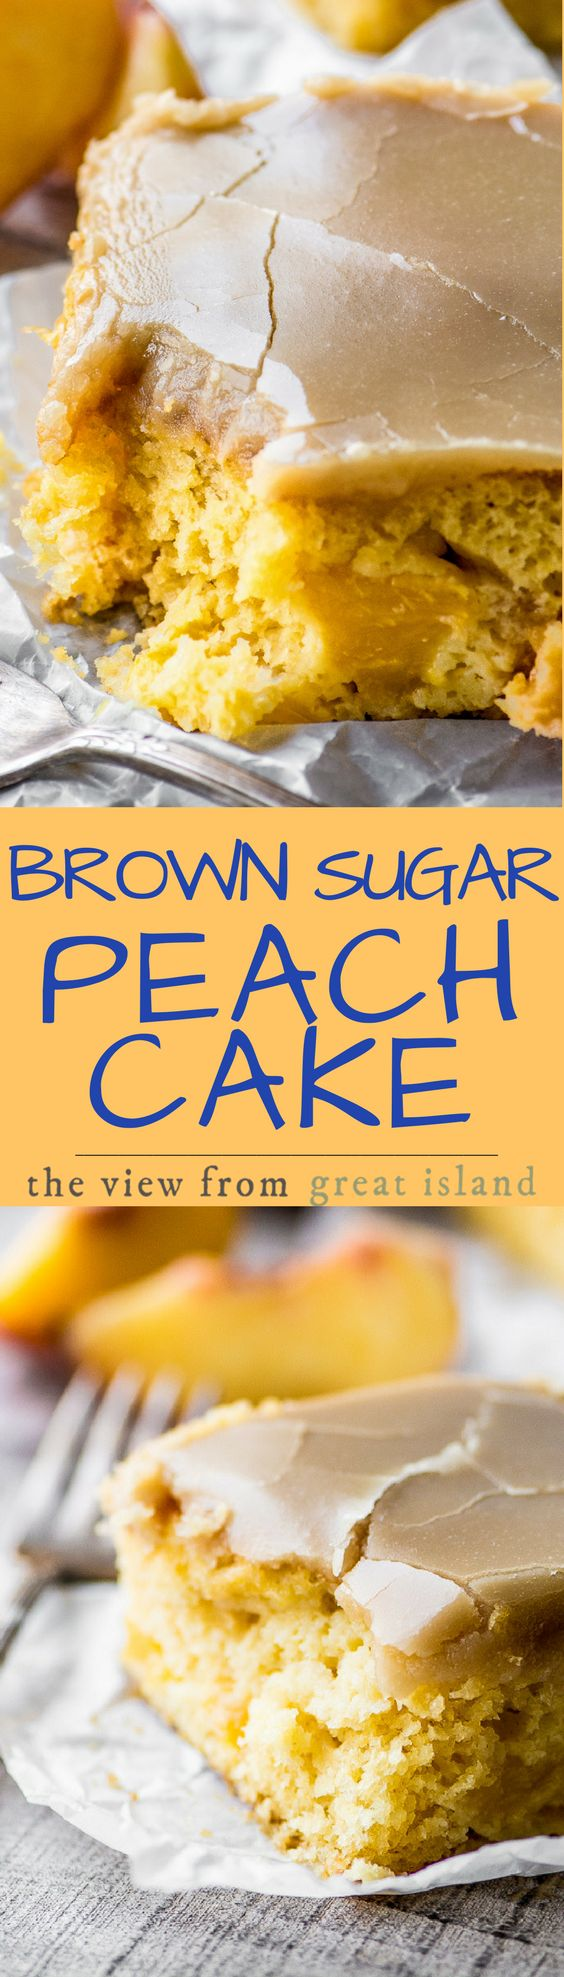 Brown Sugar Peach Cake ~ I can't think of another cake that deserves to be crowned 'cake of the summer' more than this luscious little snack cake. I mean, perfect yellow cake loaded with fresh peaches, and topped with a brown sugar caramel icing? It's a no-brainer.